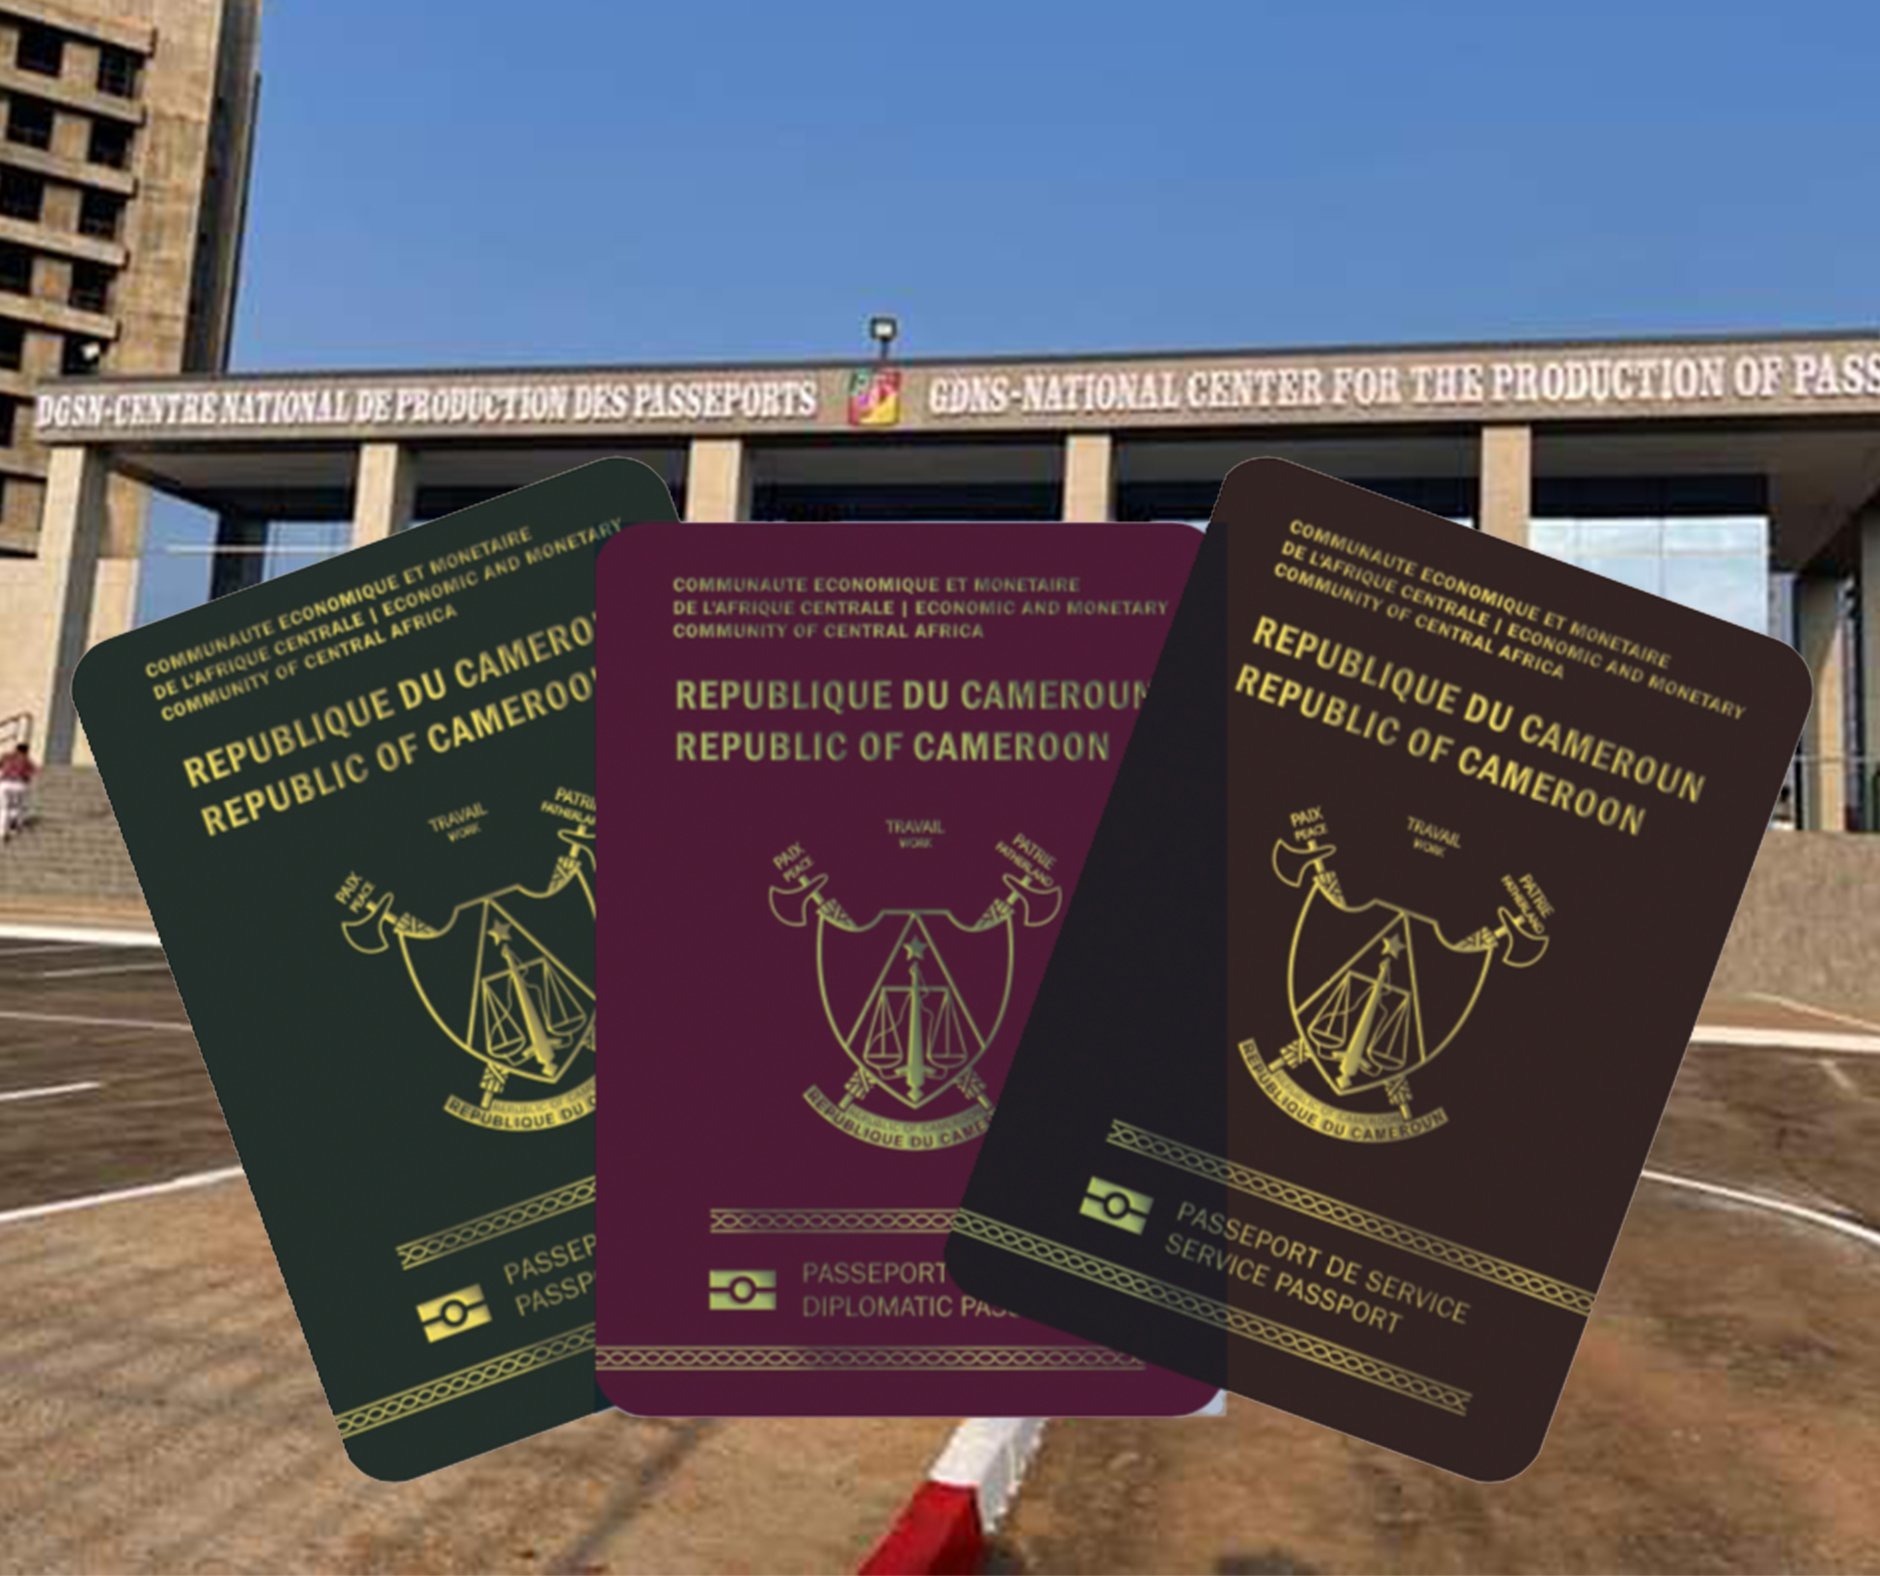 NEW CENTER FOR THE PRODUCTION OF CAMEROONIAN BIOMETRIC PASSPORTS OPENS IN YAOUNDE